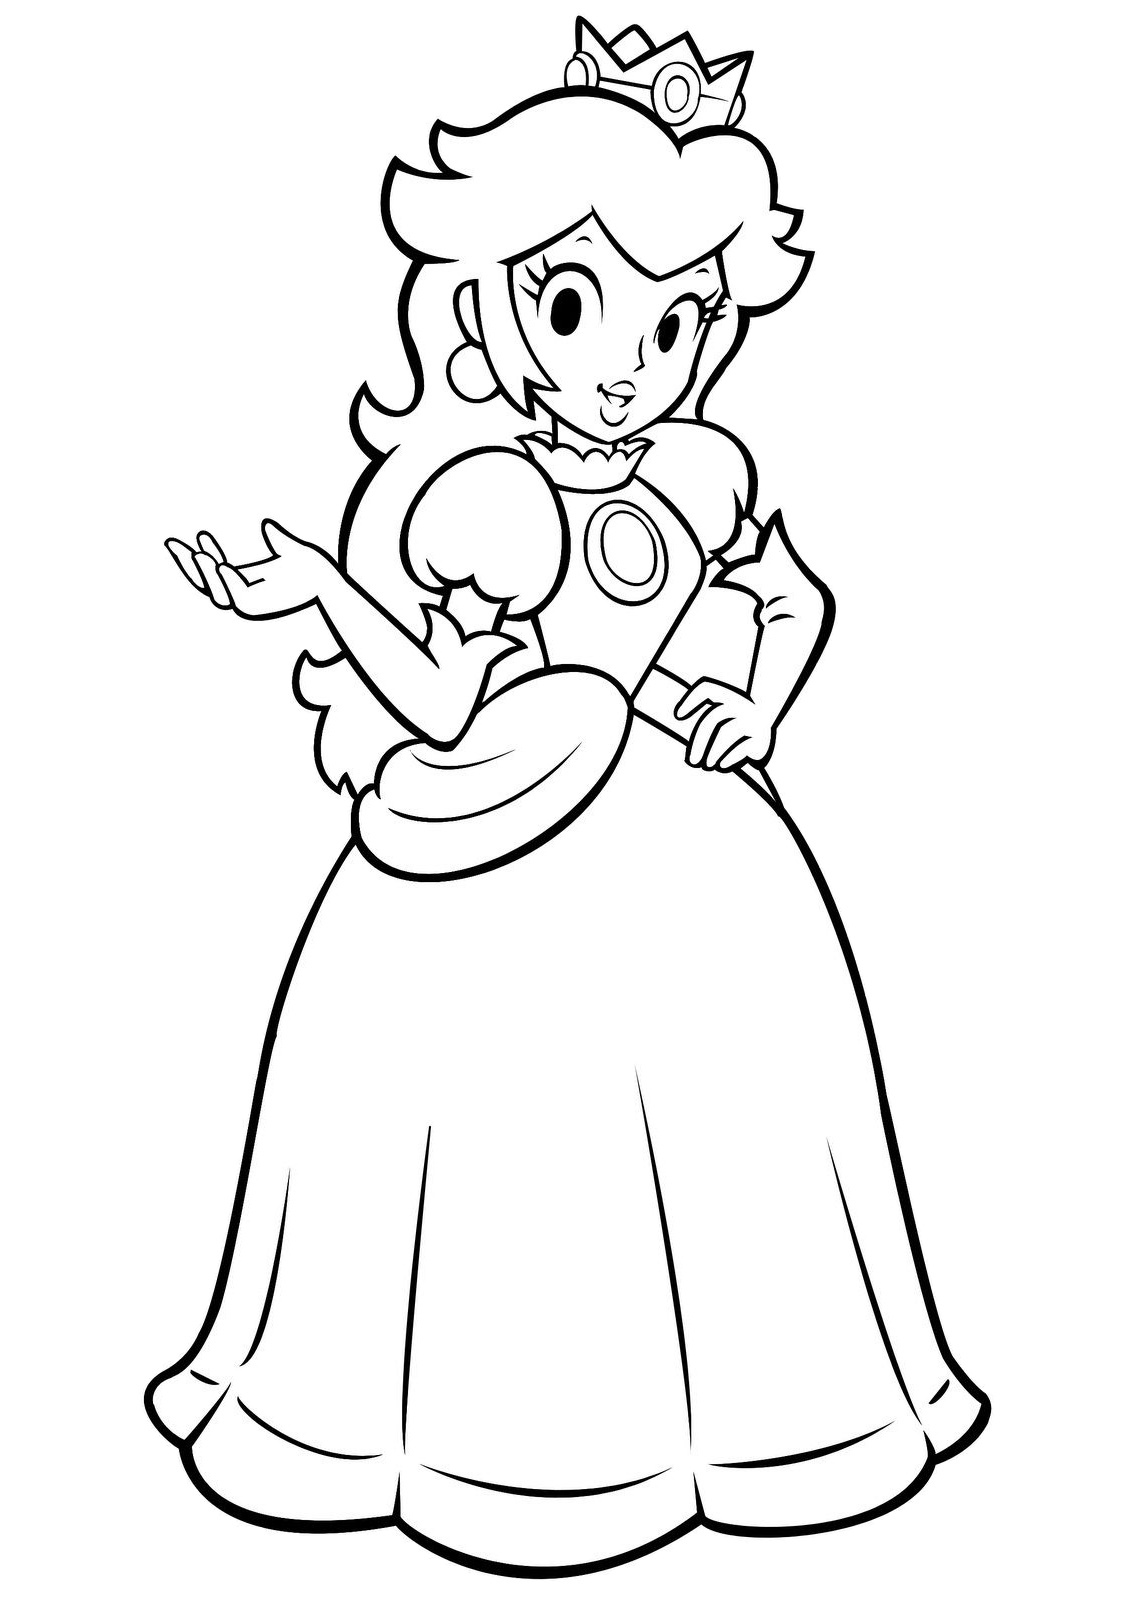 Princess Peach Mario Coloring Pages Peach Hand Gesture with Her Ballgown Dress and Crown